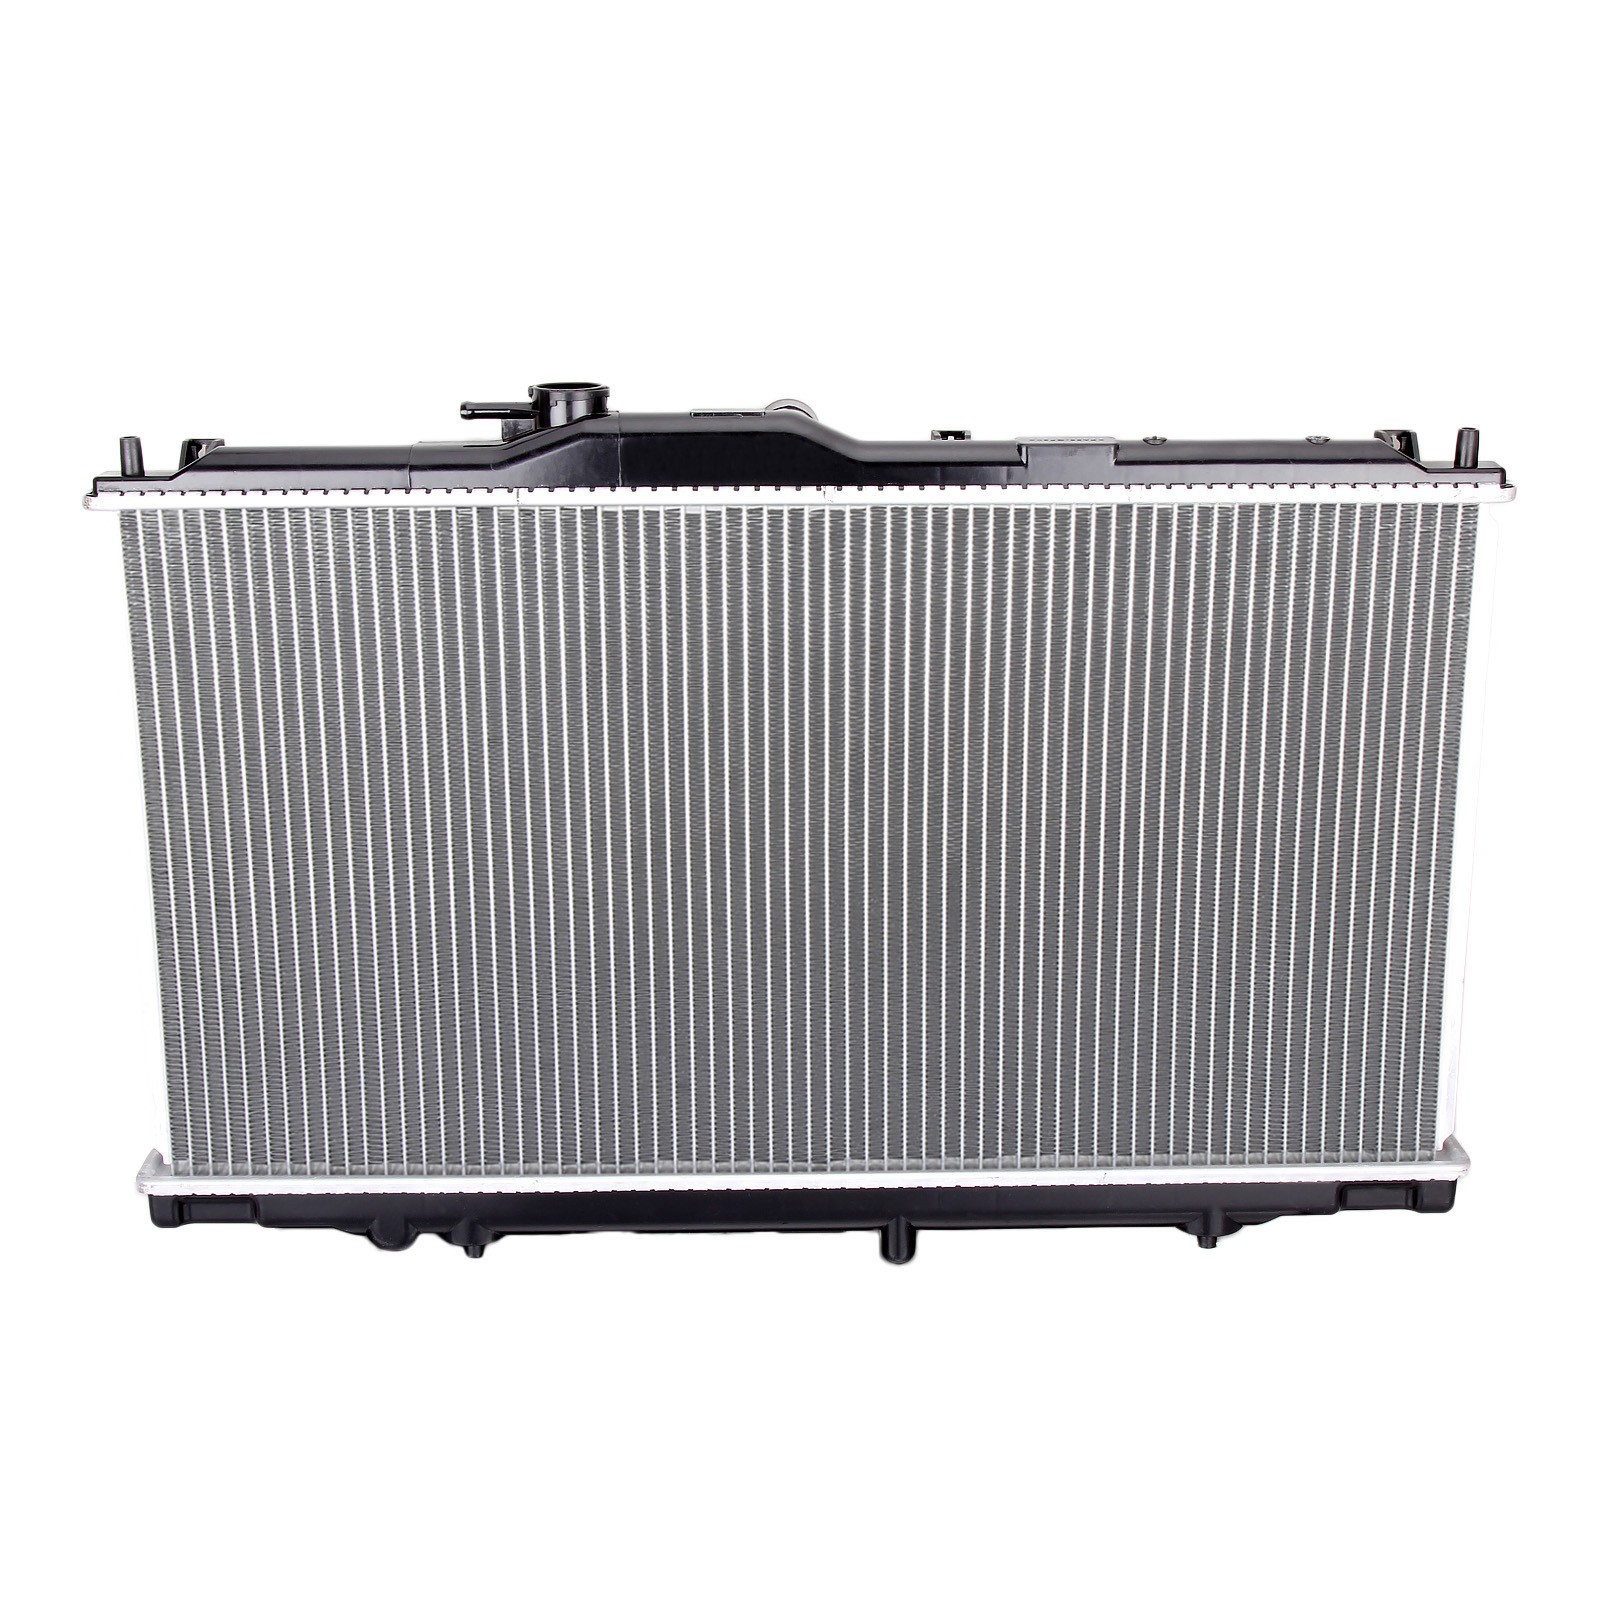 Dromedary-Find 2002 Honda Civic Radiator Honda Civic Aluminum Radiator From Hongdao-2